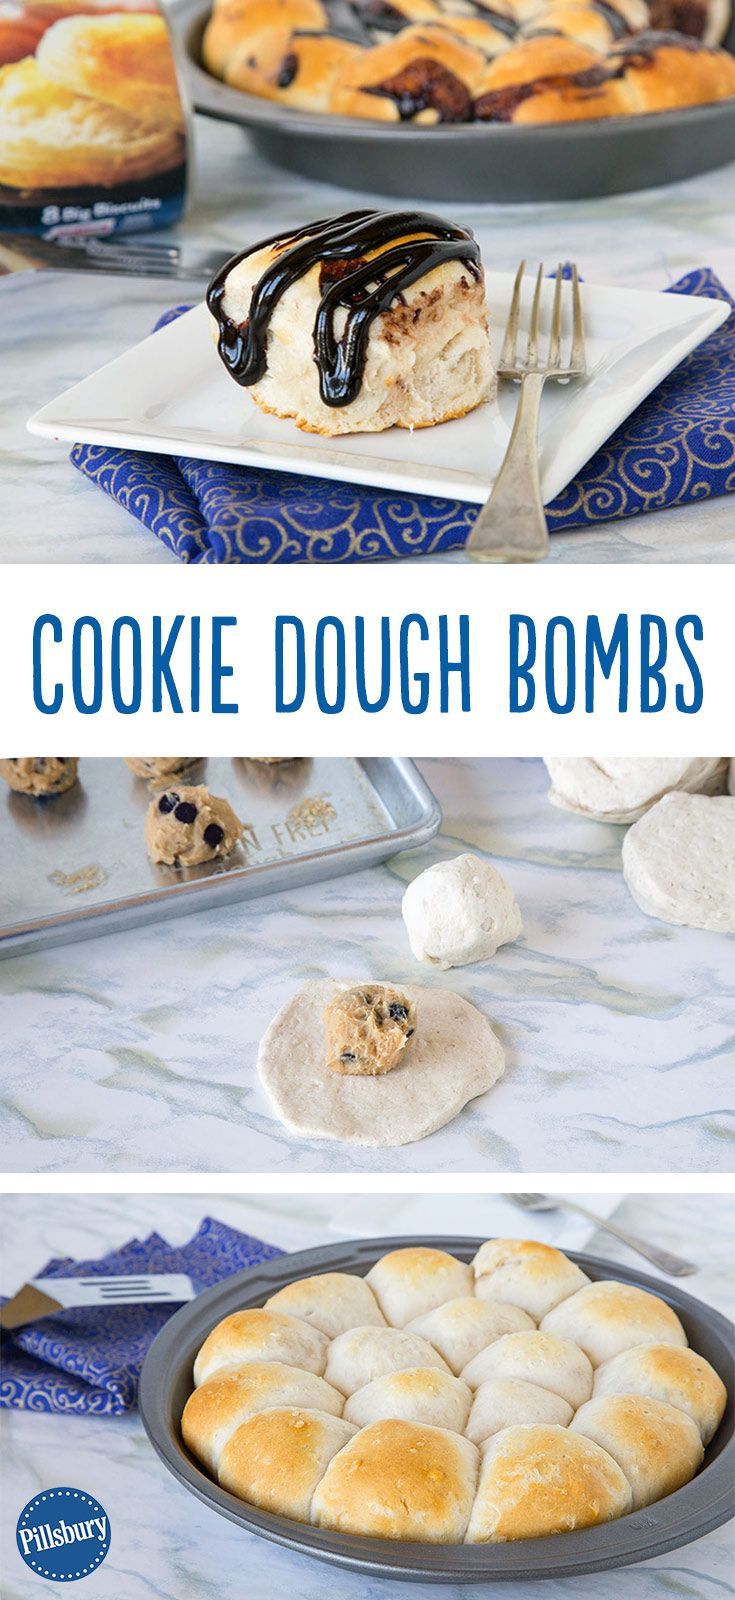 What do you call a warm flaky biscuit with an ooey gooey cookie dough center? Heaven. Don't forget to to drizzle chocolate sauce on top of these Cookie Dough Bombs.